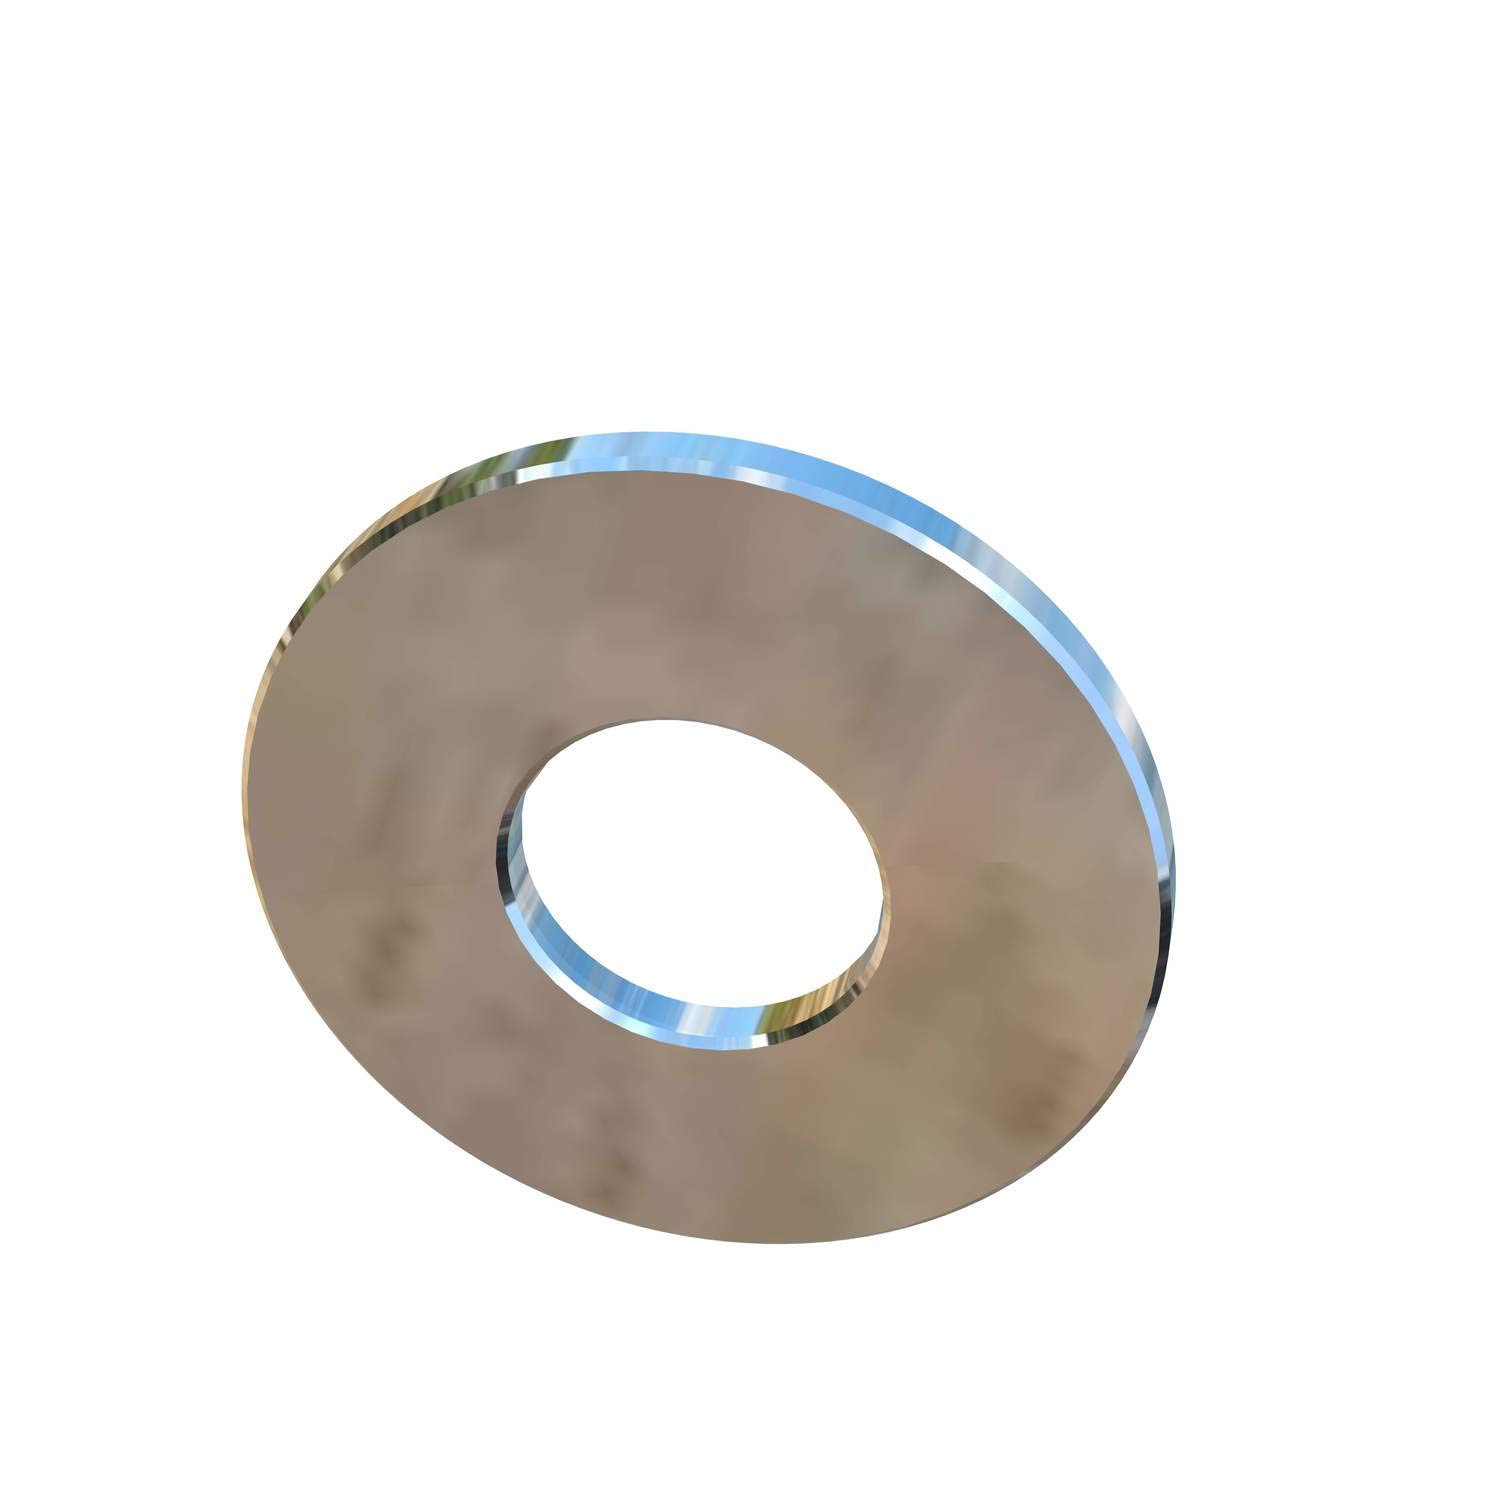 3//4 Inch Flat Washer 0.148 Thick X 2 Inch Outside Diameter Allied Titanium 0046384, Pack of 2 CP Grade 2